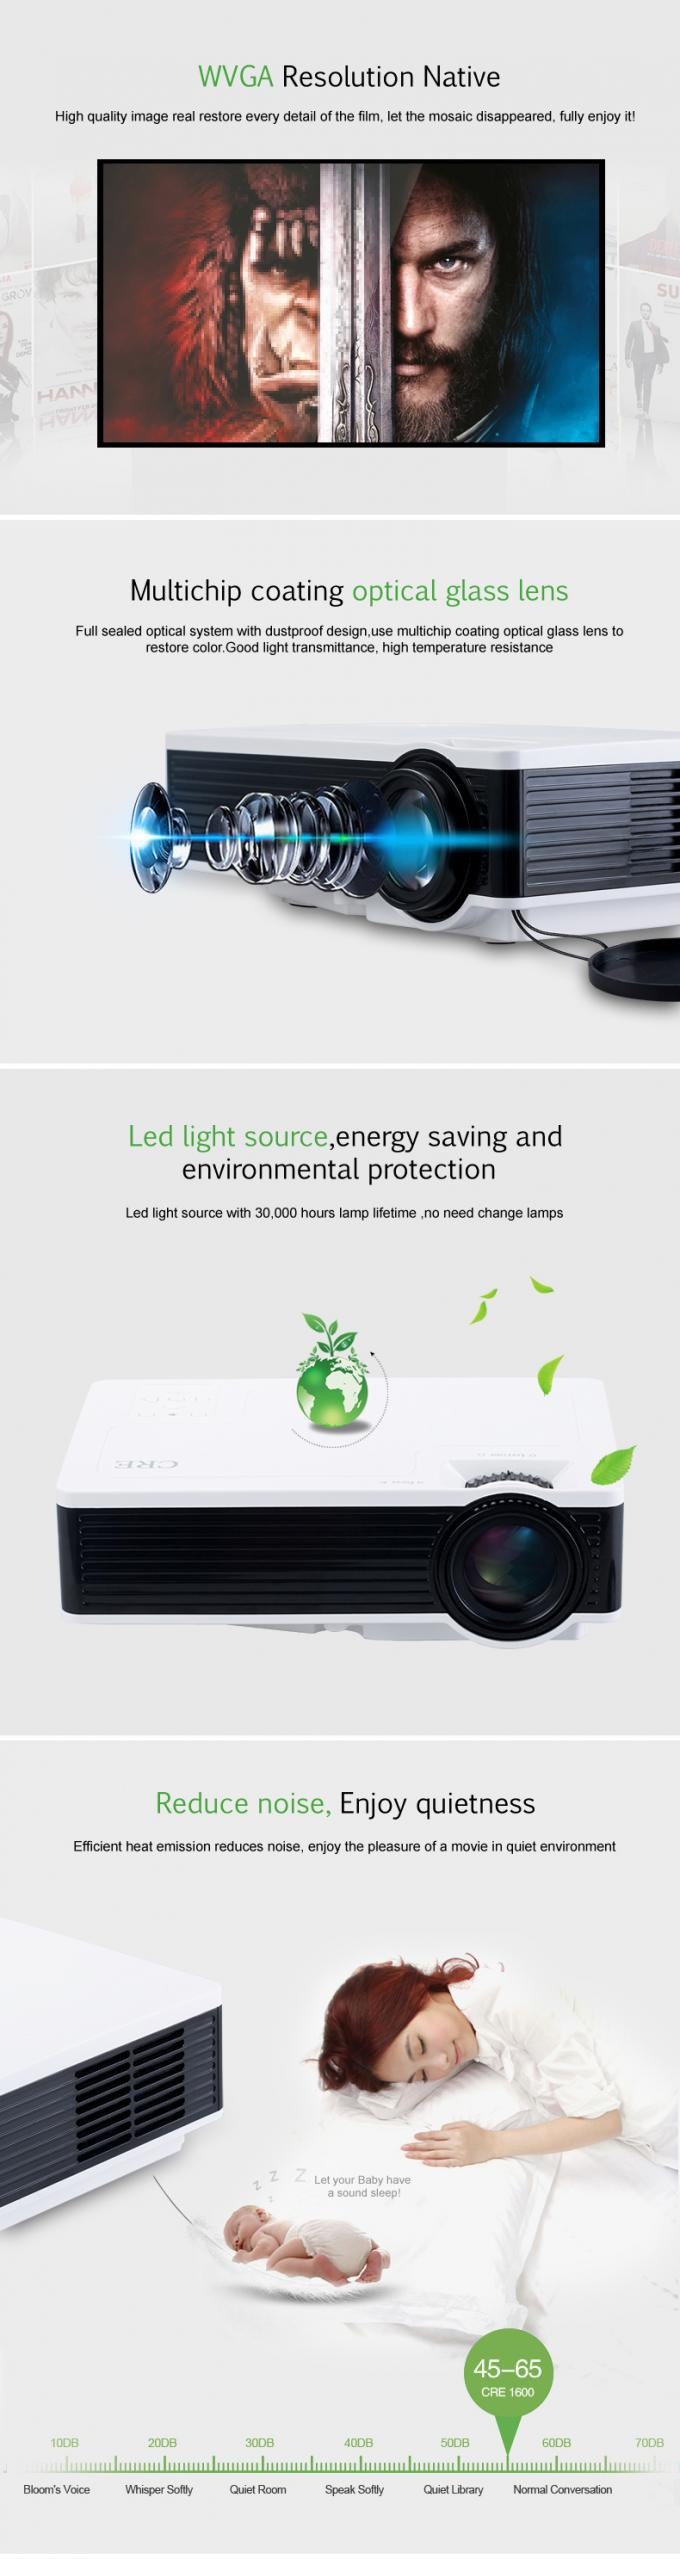 4.0 Inch Single LCD Projector Home Theater , Home Video Projector Full Color